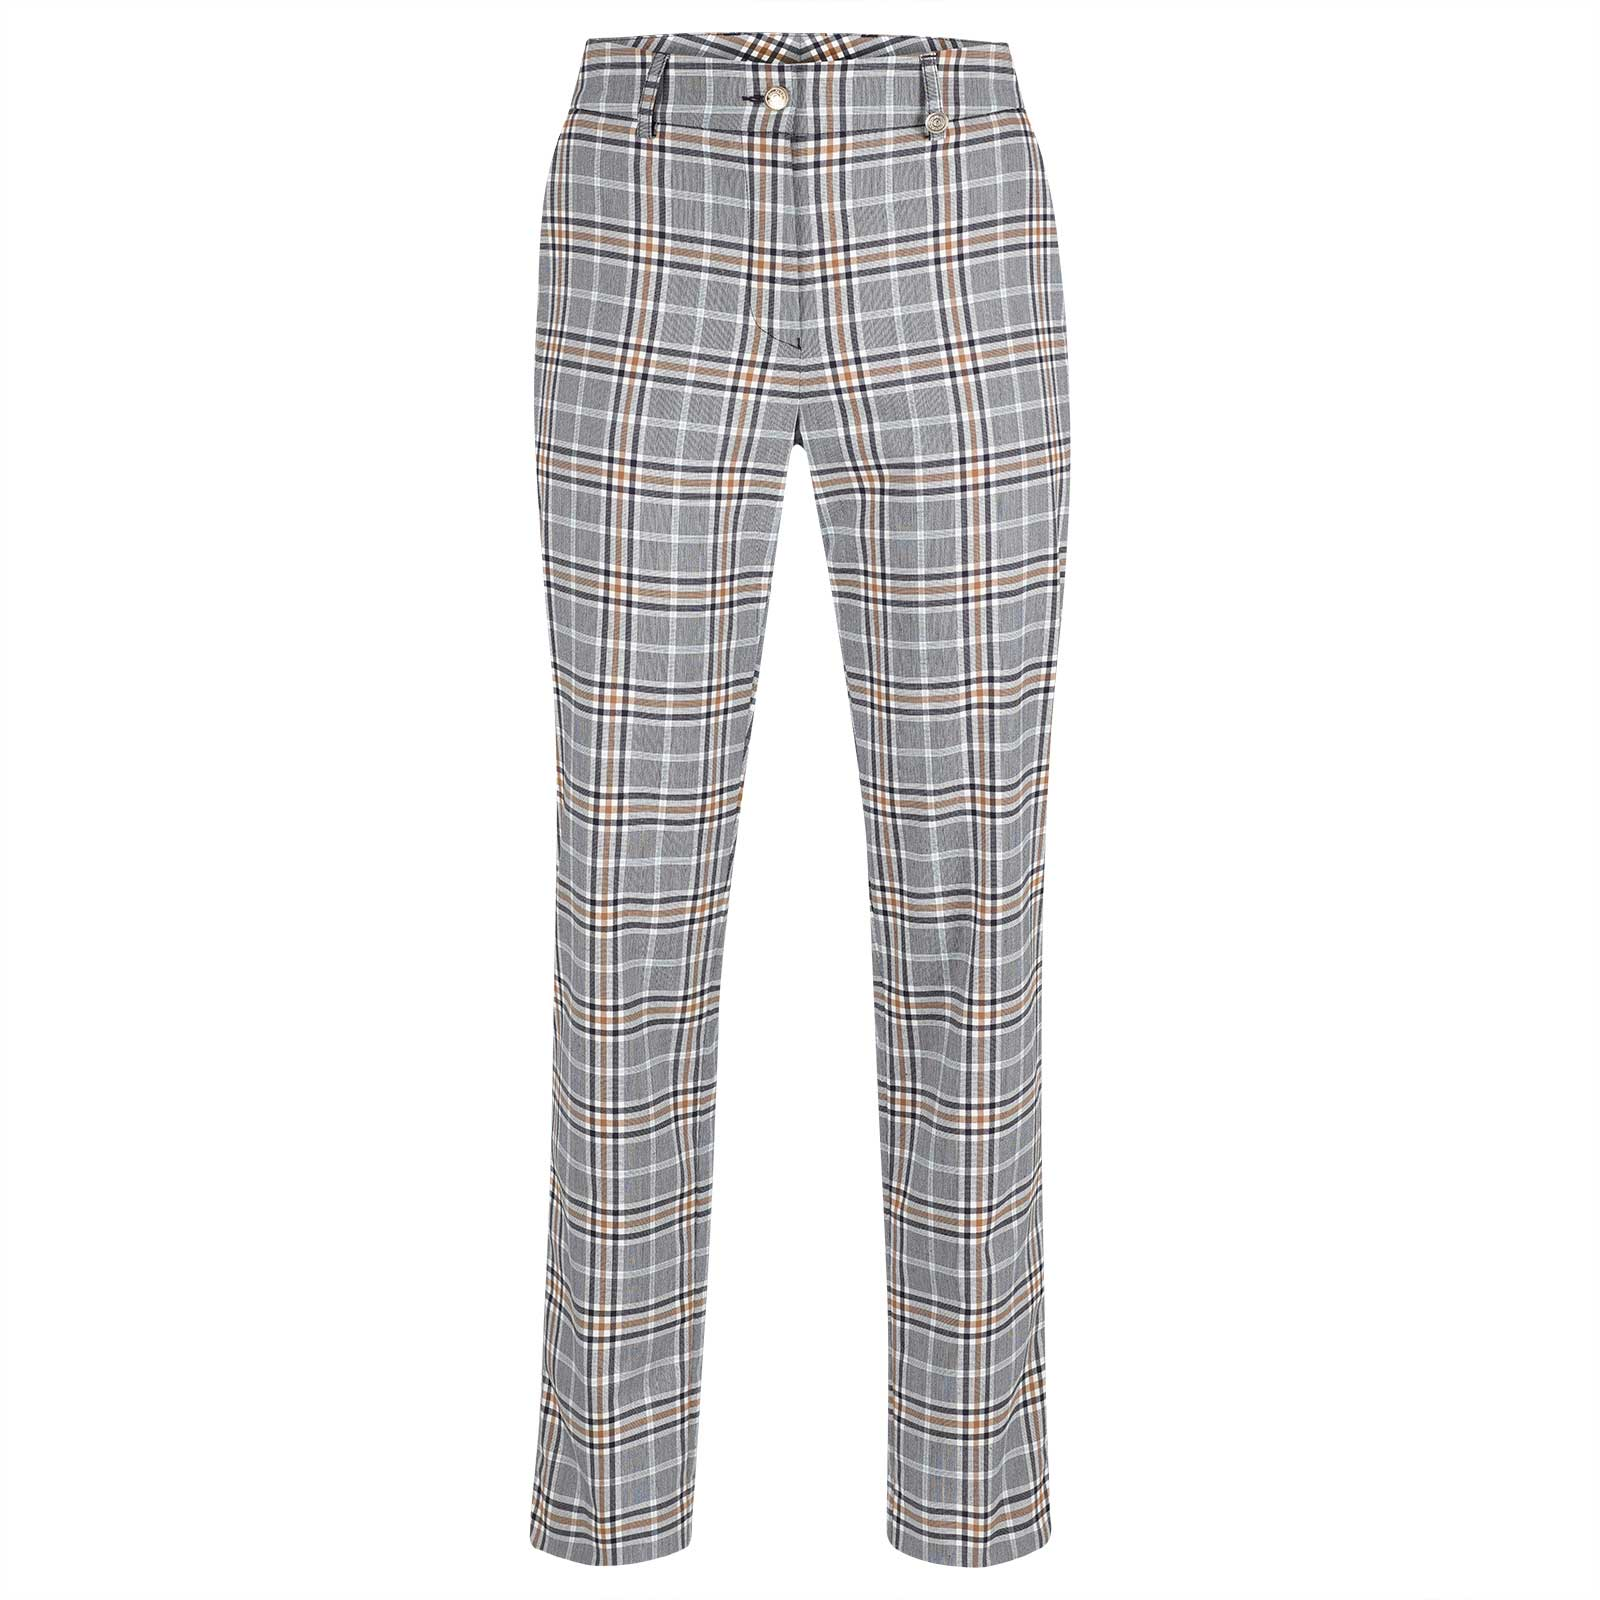 Ladies' 7/8 checked golf trousers with excellent stretch properties